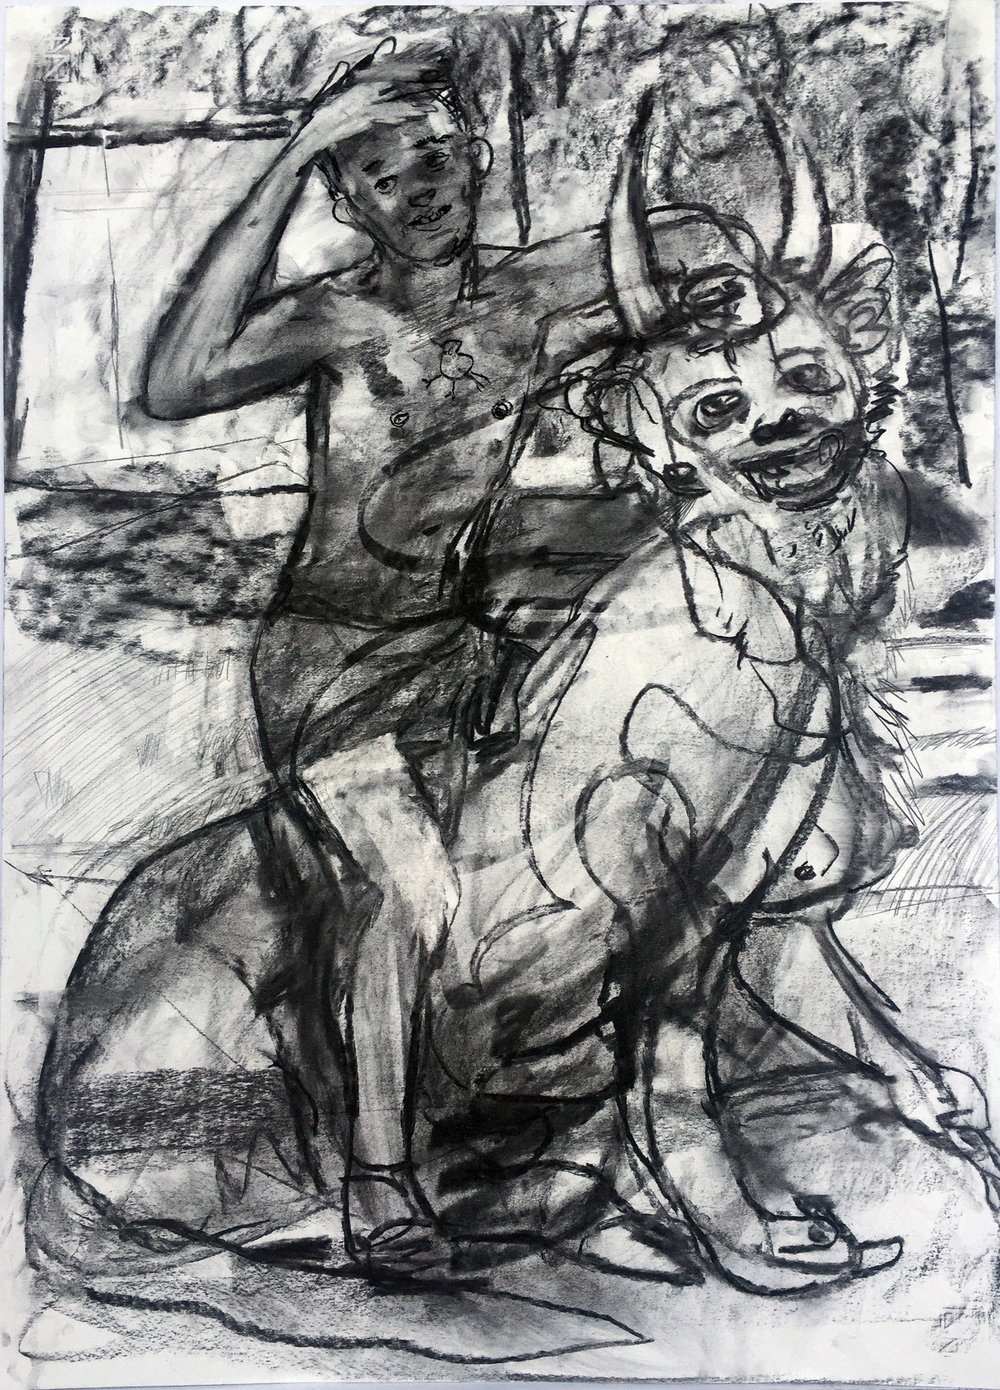 Son and fiend 18 by 24 inches charcoal on paper 2017.jpg